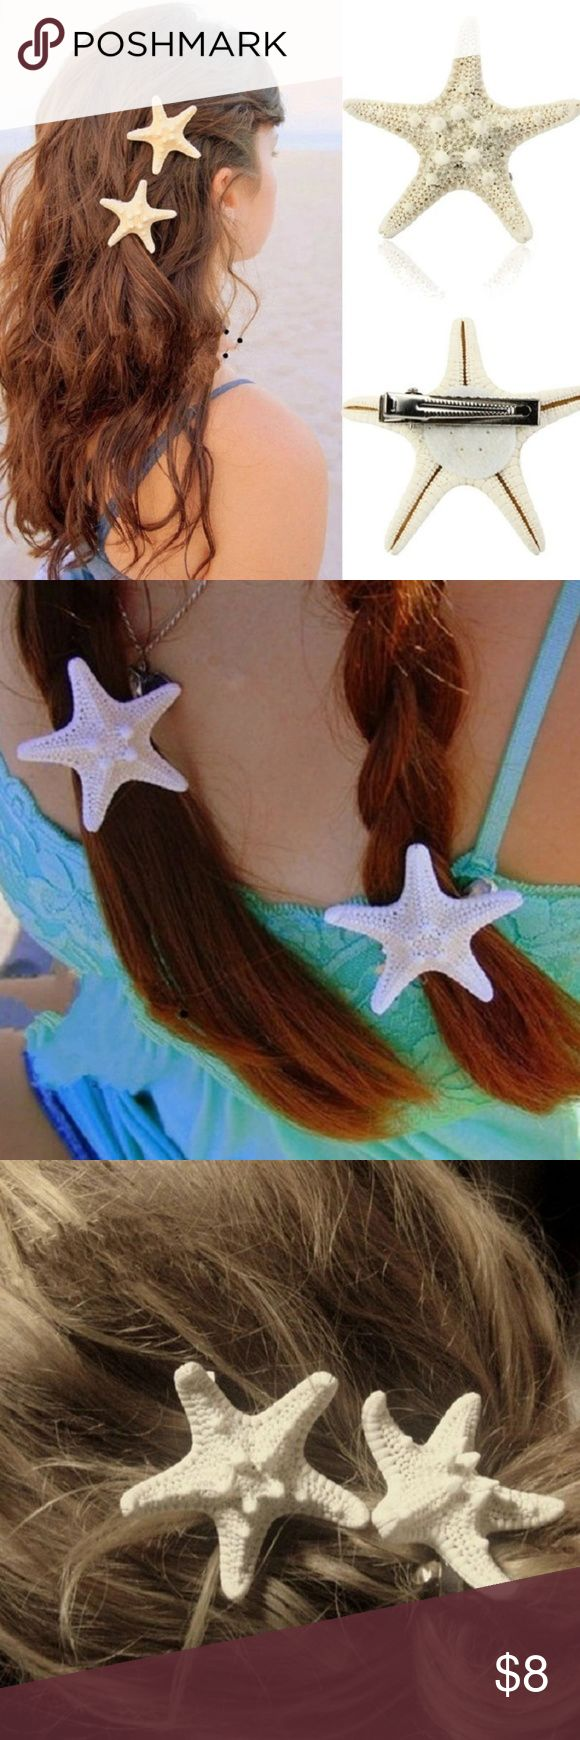 Natural Starfish Hair Clip (1 pc) Beautiful handmade dried sea star hair clips in a beige shade.  Size varies (1-2 inches in diameter)  1 for $8 2 for $13 3 for $19  Price is firm. Accessories Hair Accessories